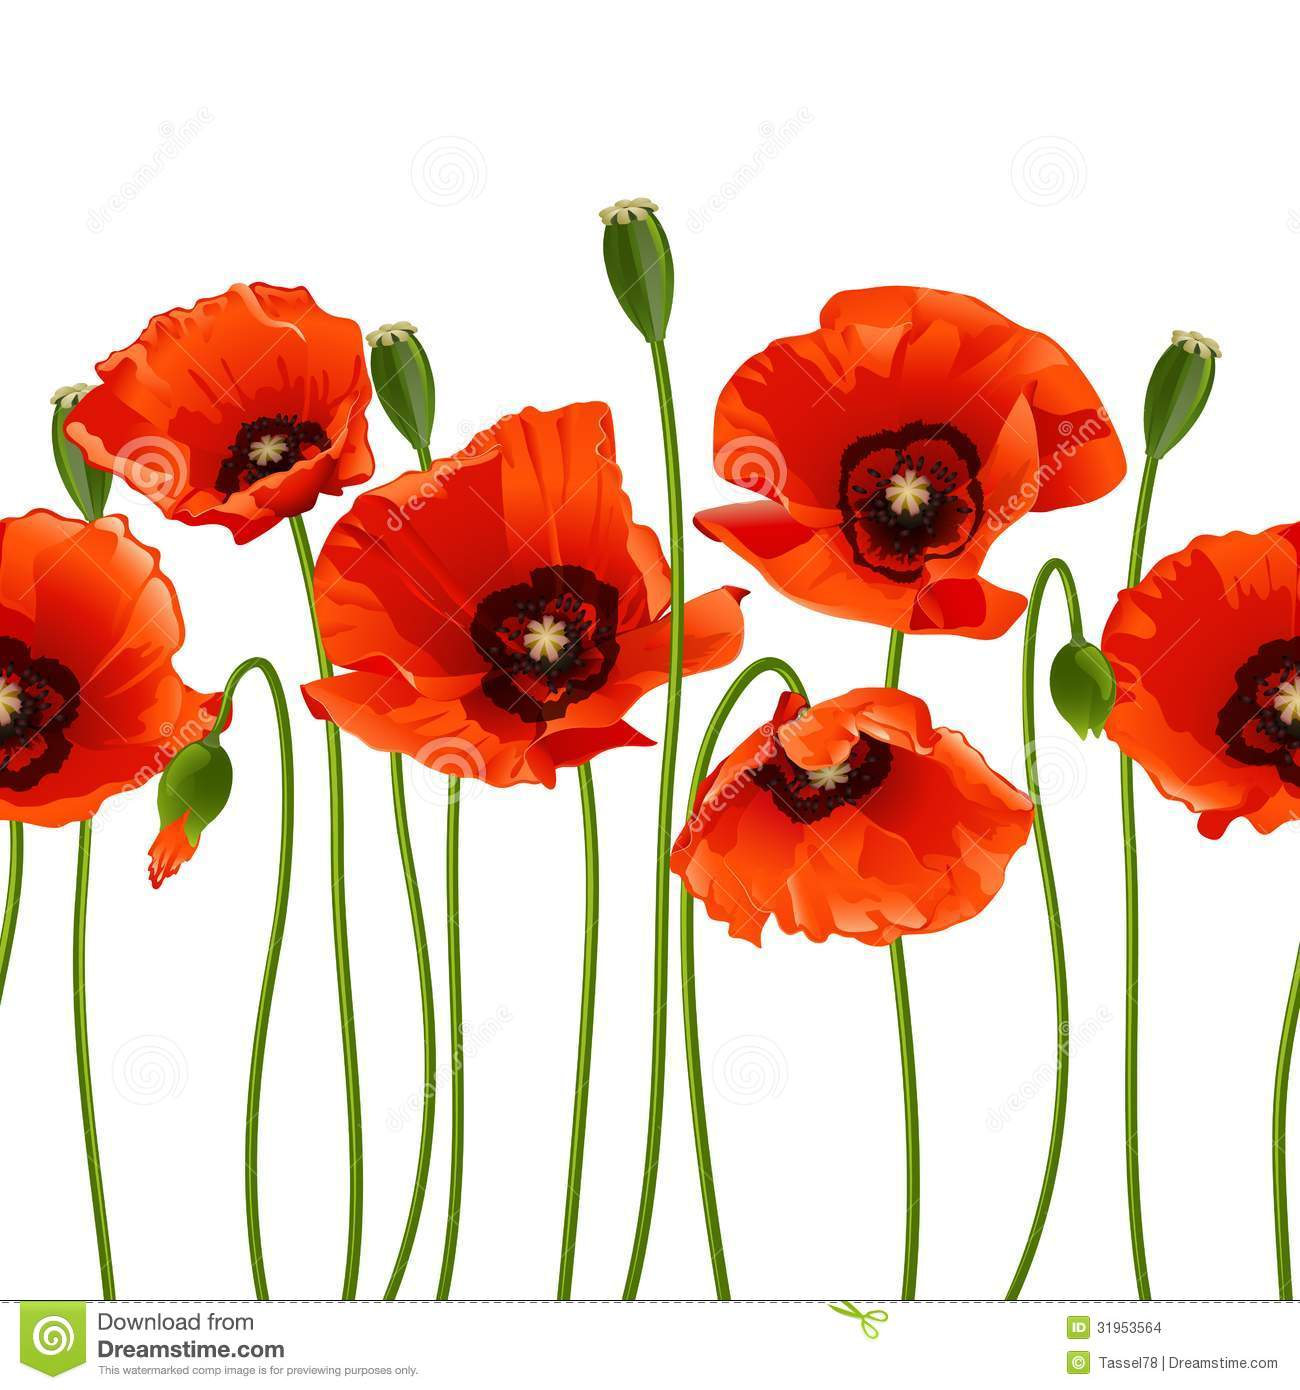 poppy red background - photo #9